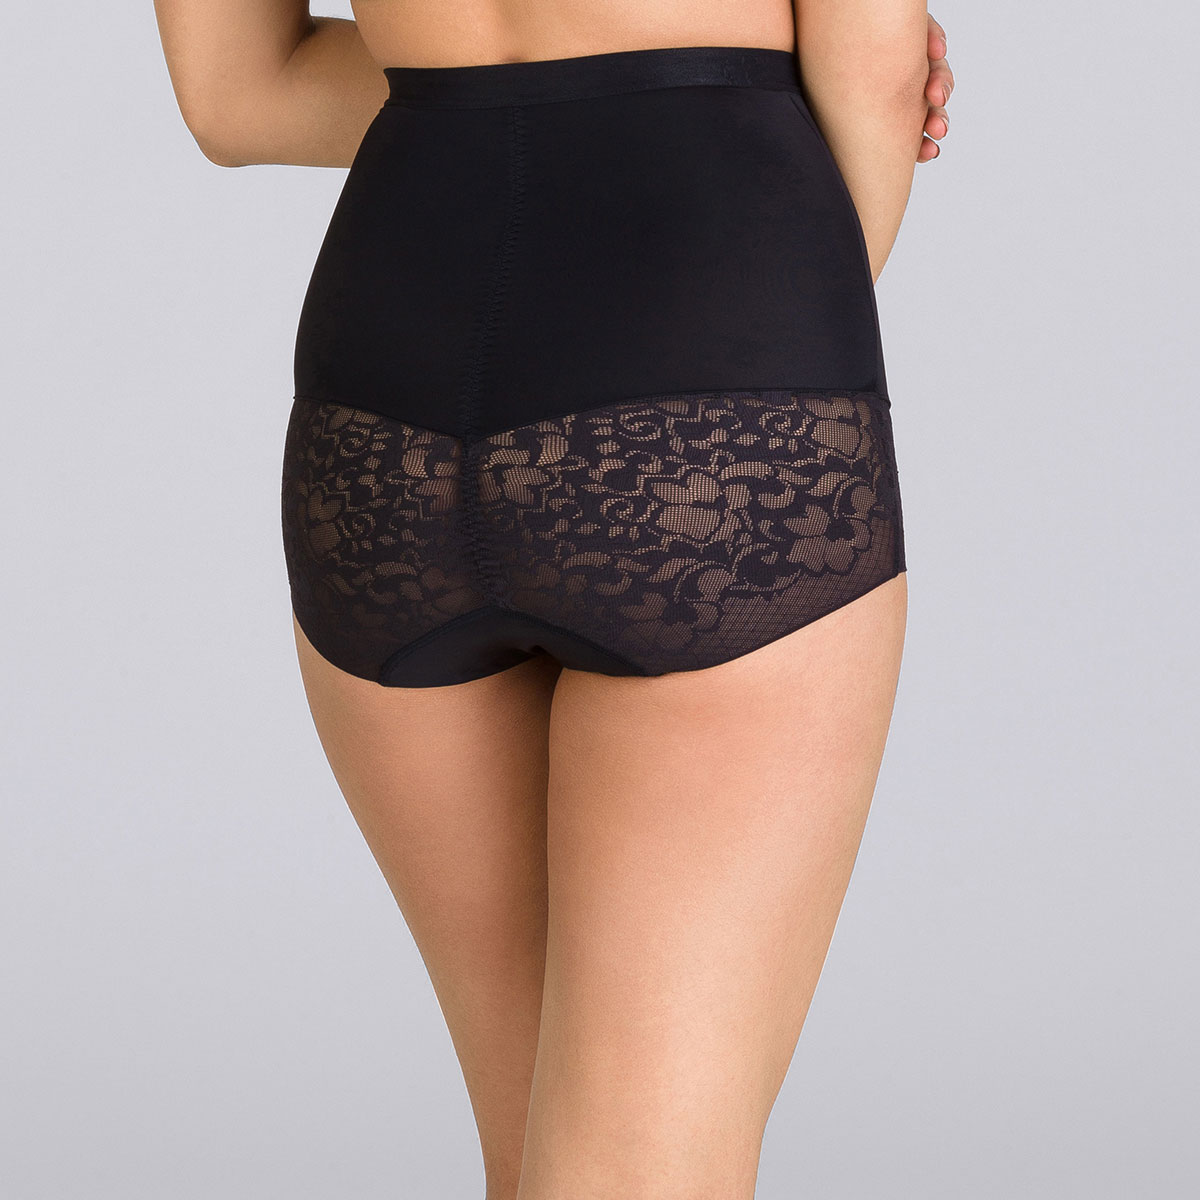 Black High-Waisted Girdle - Expert in Silhouette, , PLAYTEX